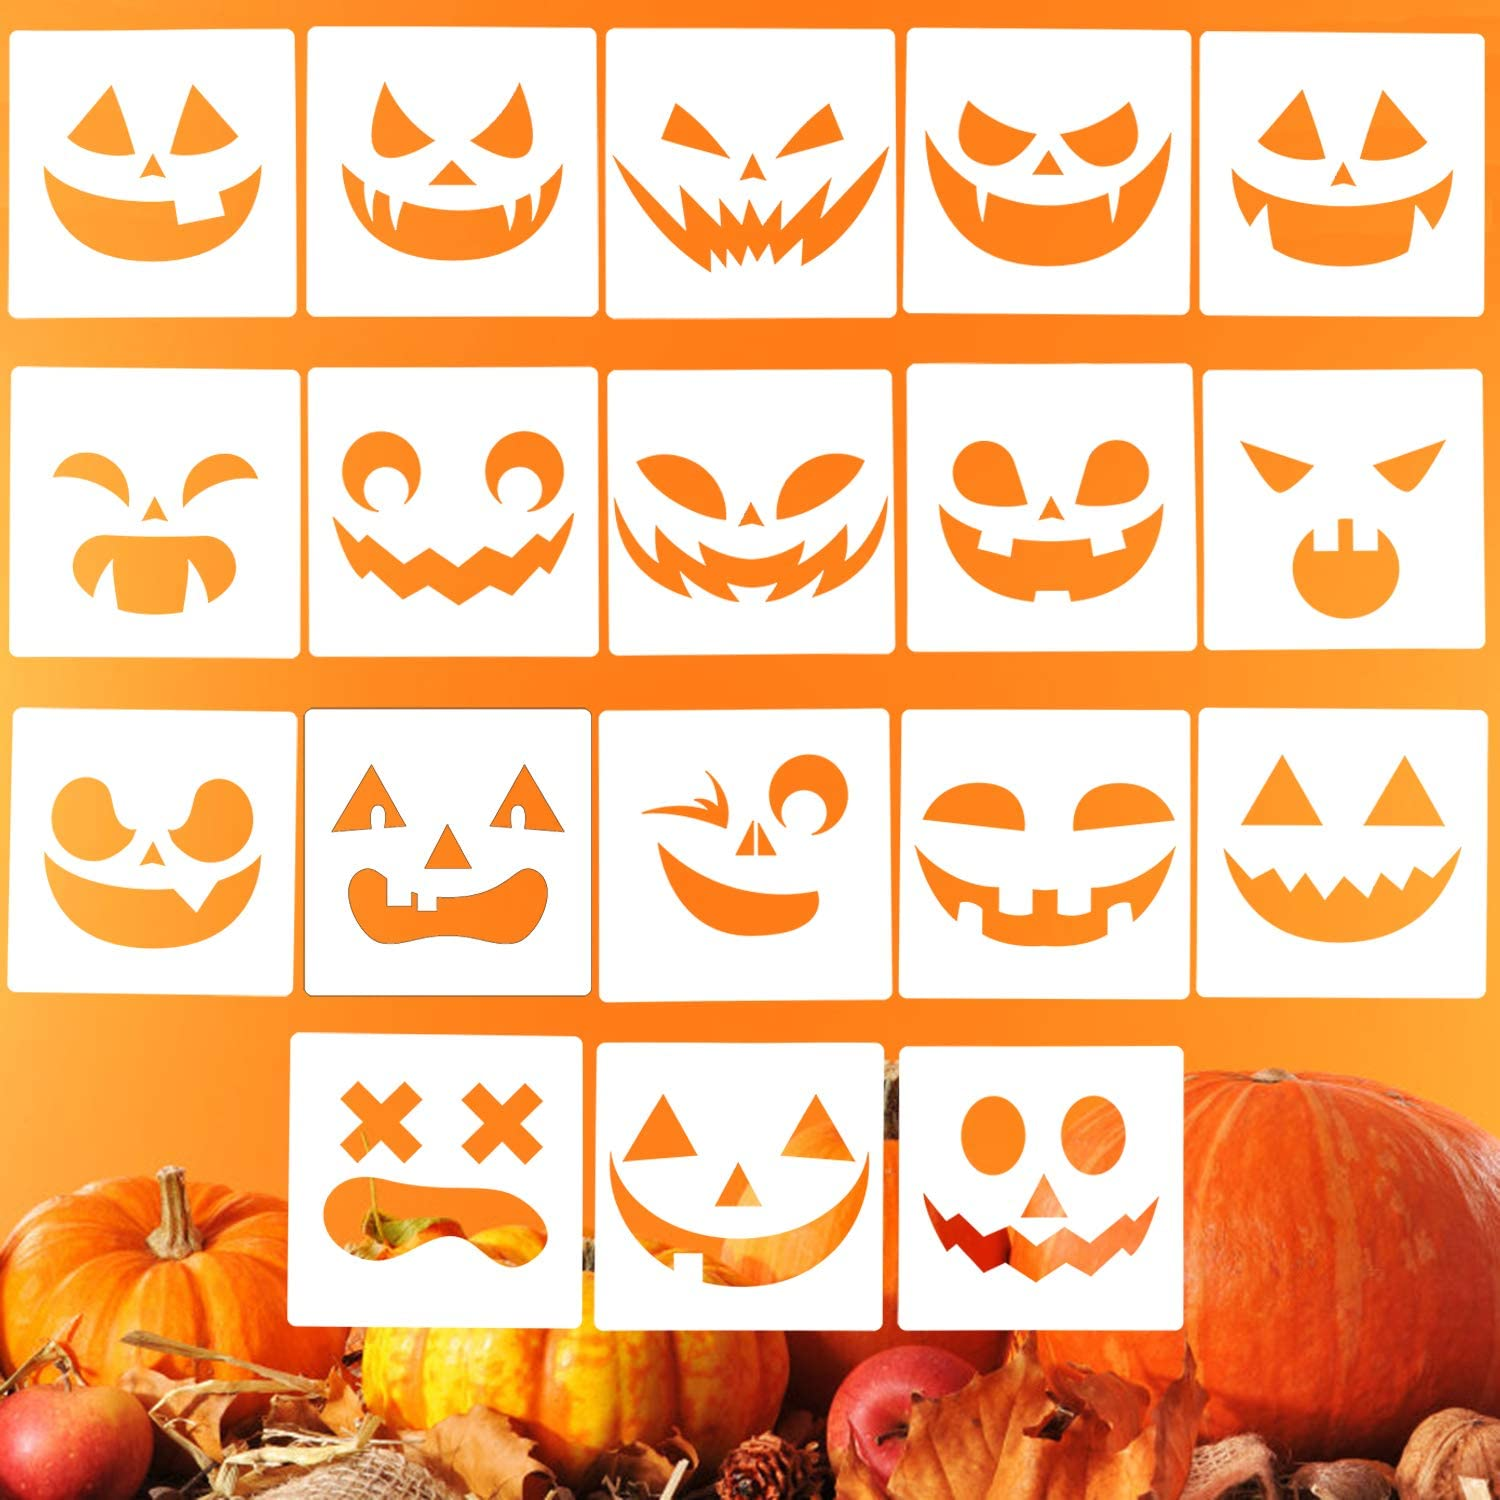 LOCOLO 18 Pieces Halloween Stencils Halloween Pumpkin Smiley Face Drawing Templates 5.3 x 5.3 Inches